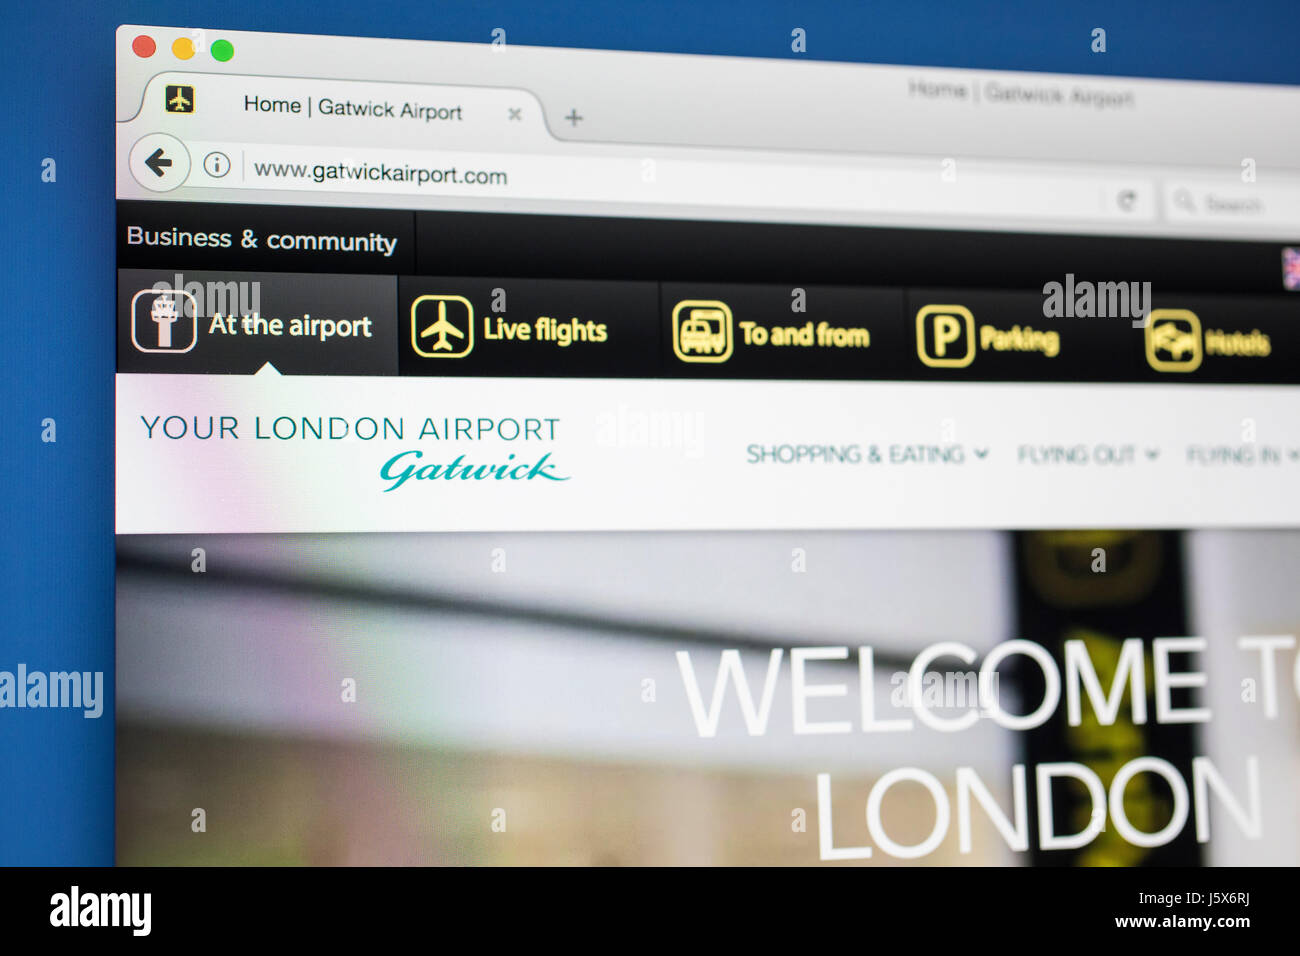 LONDON, UK - MAY 17TH 2017: The homepage for the official website of London Gatwick Airport, on 17th May 2017. - Stock Image